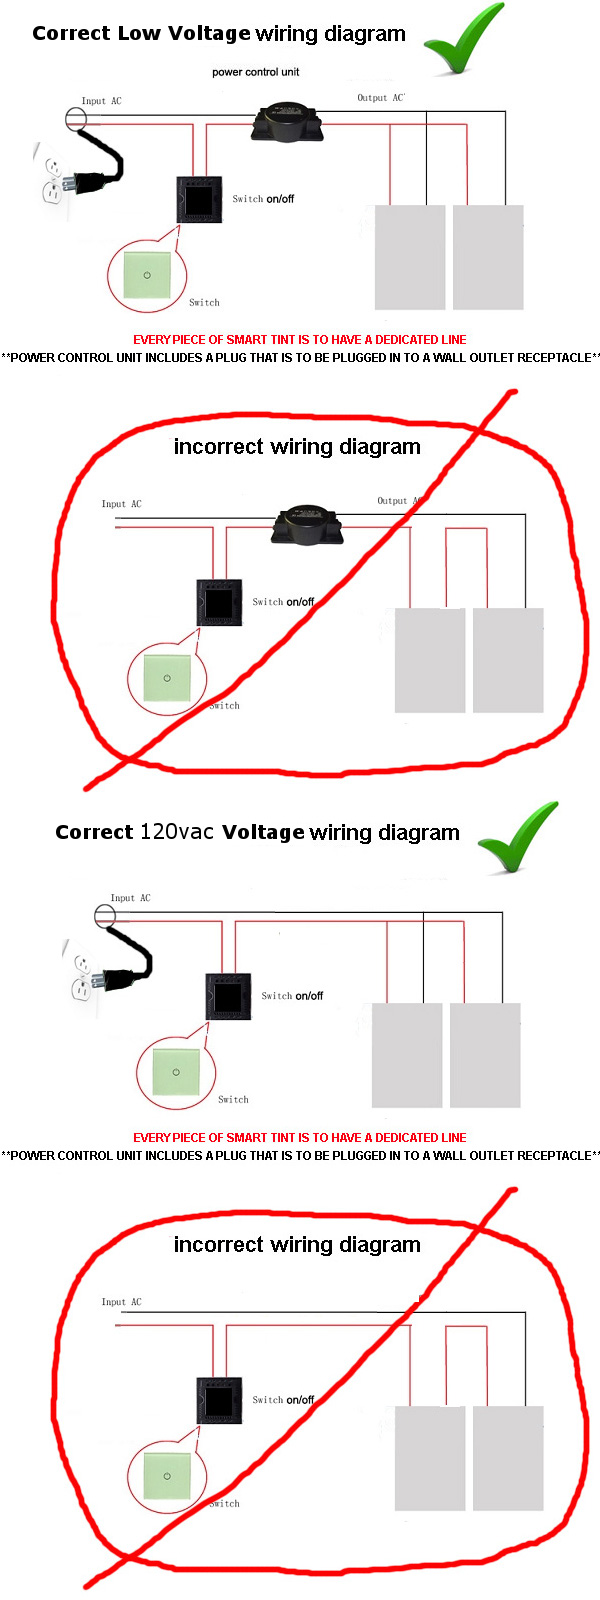 Smart_Tint_Wiring_Diagram.jpg